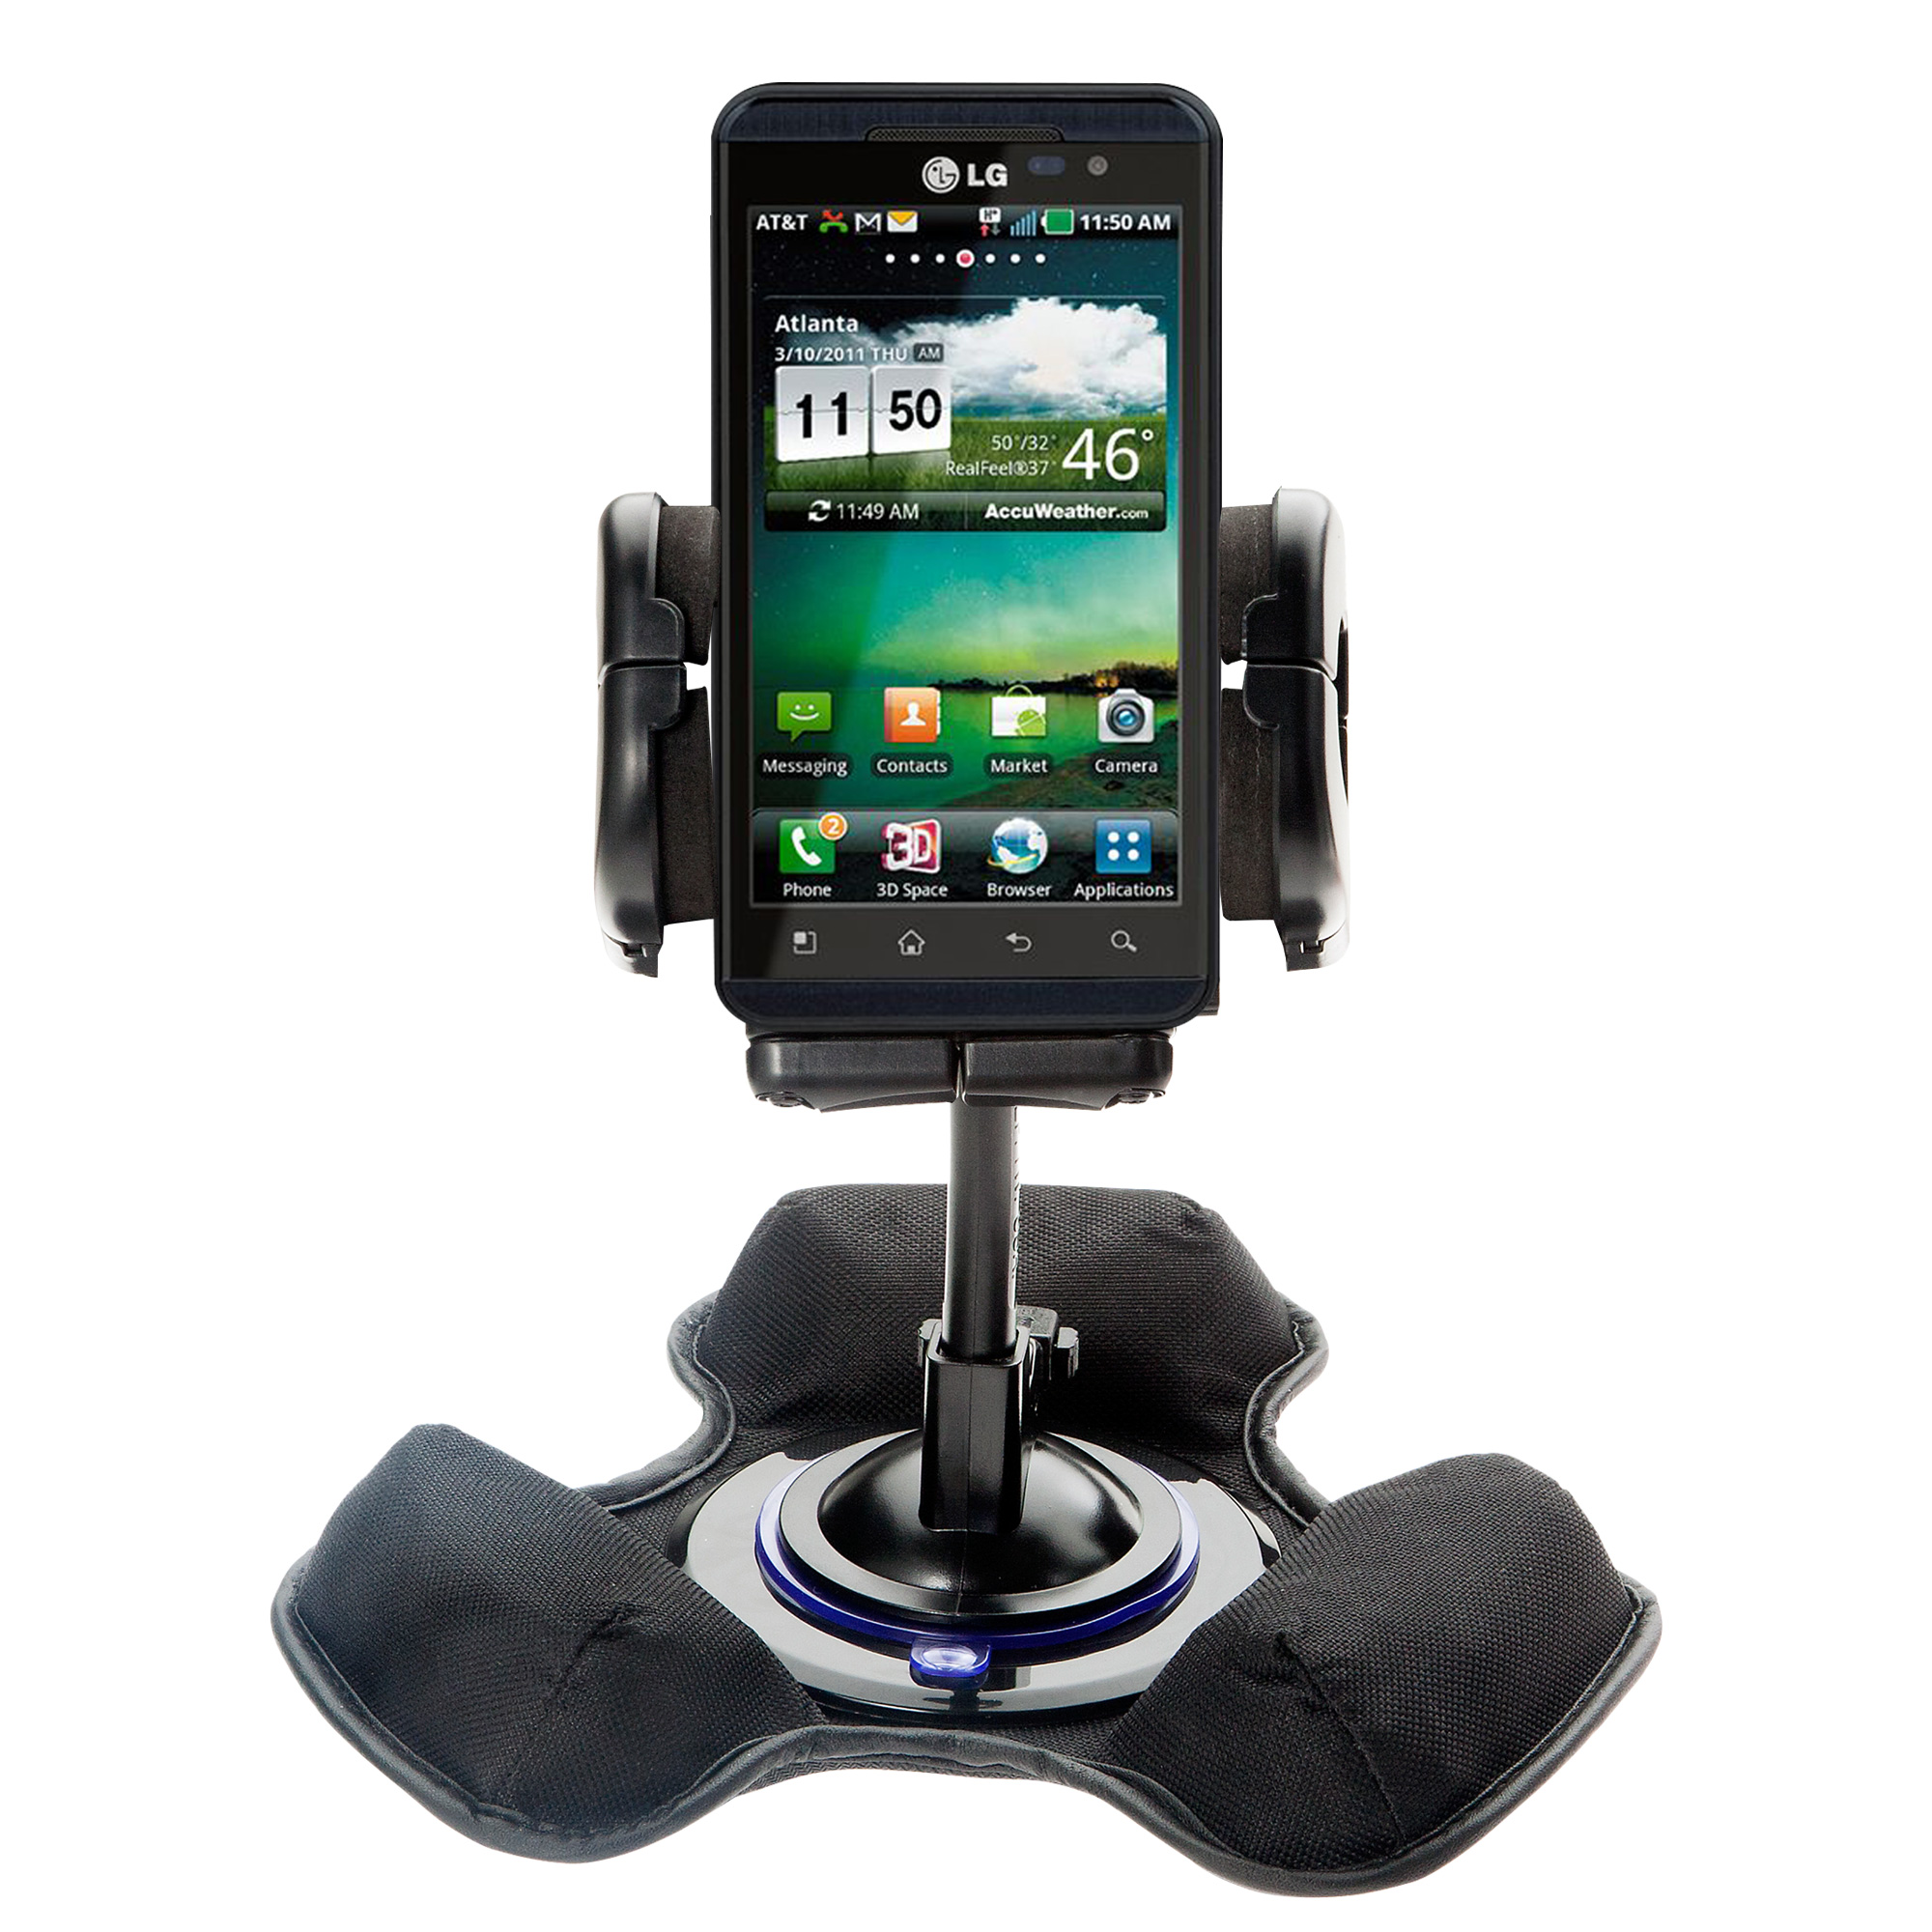 Car / Truck Vehicle Holder Mounting System for LG Thrill 4G Includes Unique Flexible Windshield Suction and Universal Dashboard Mount Options